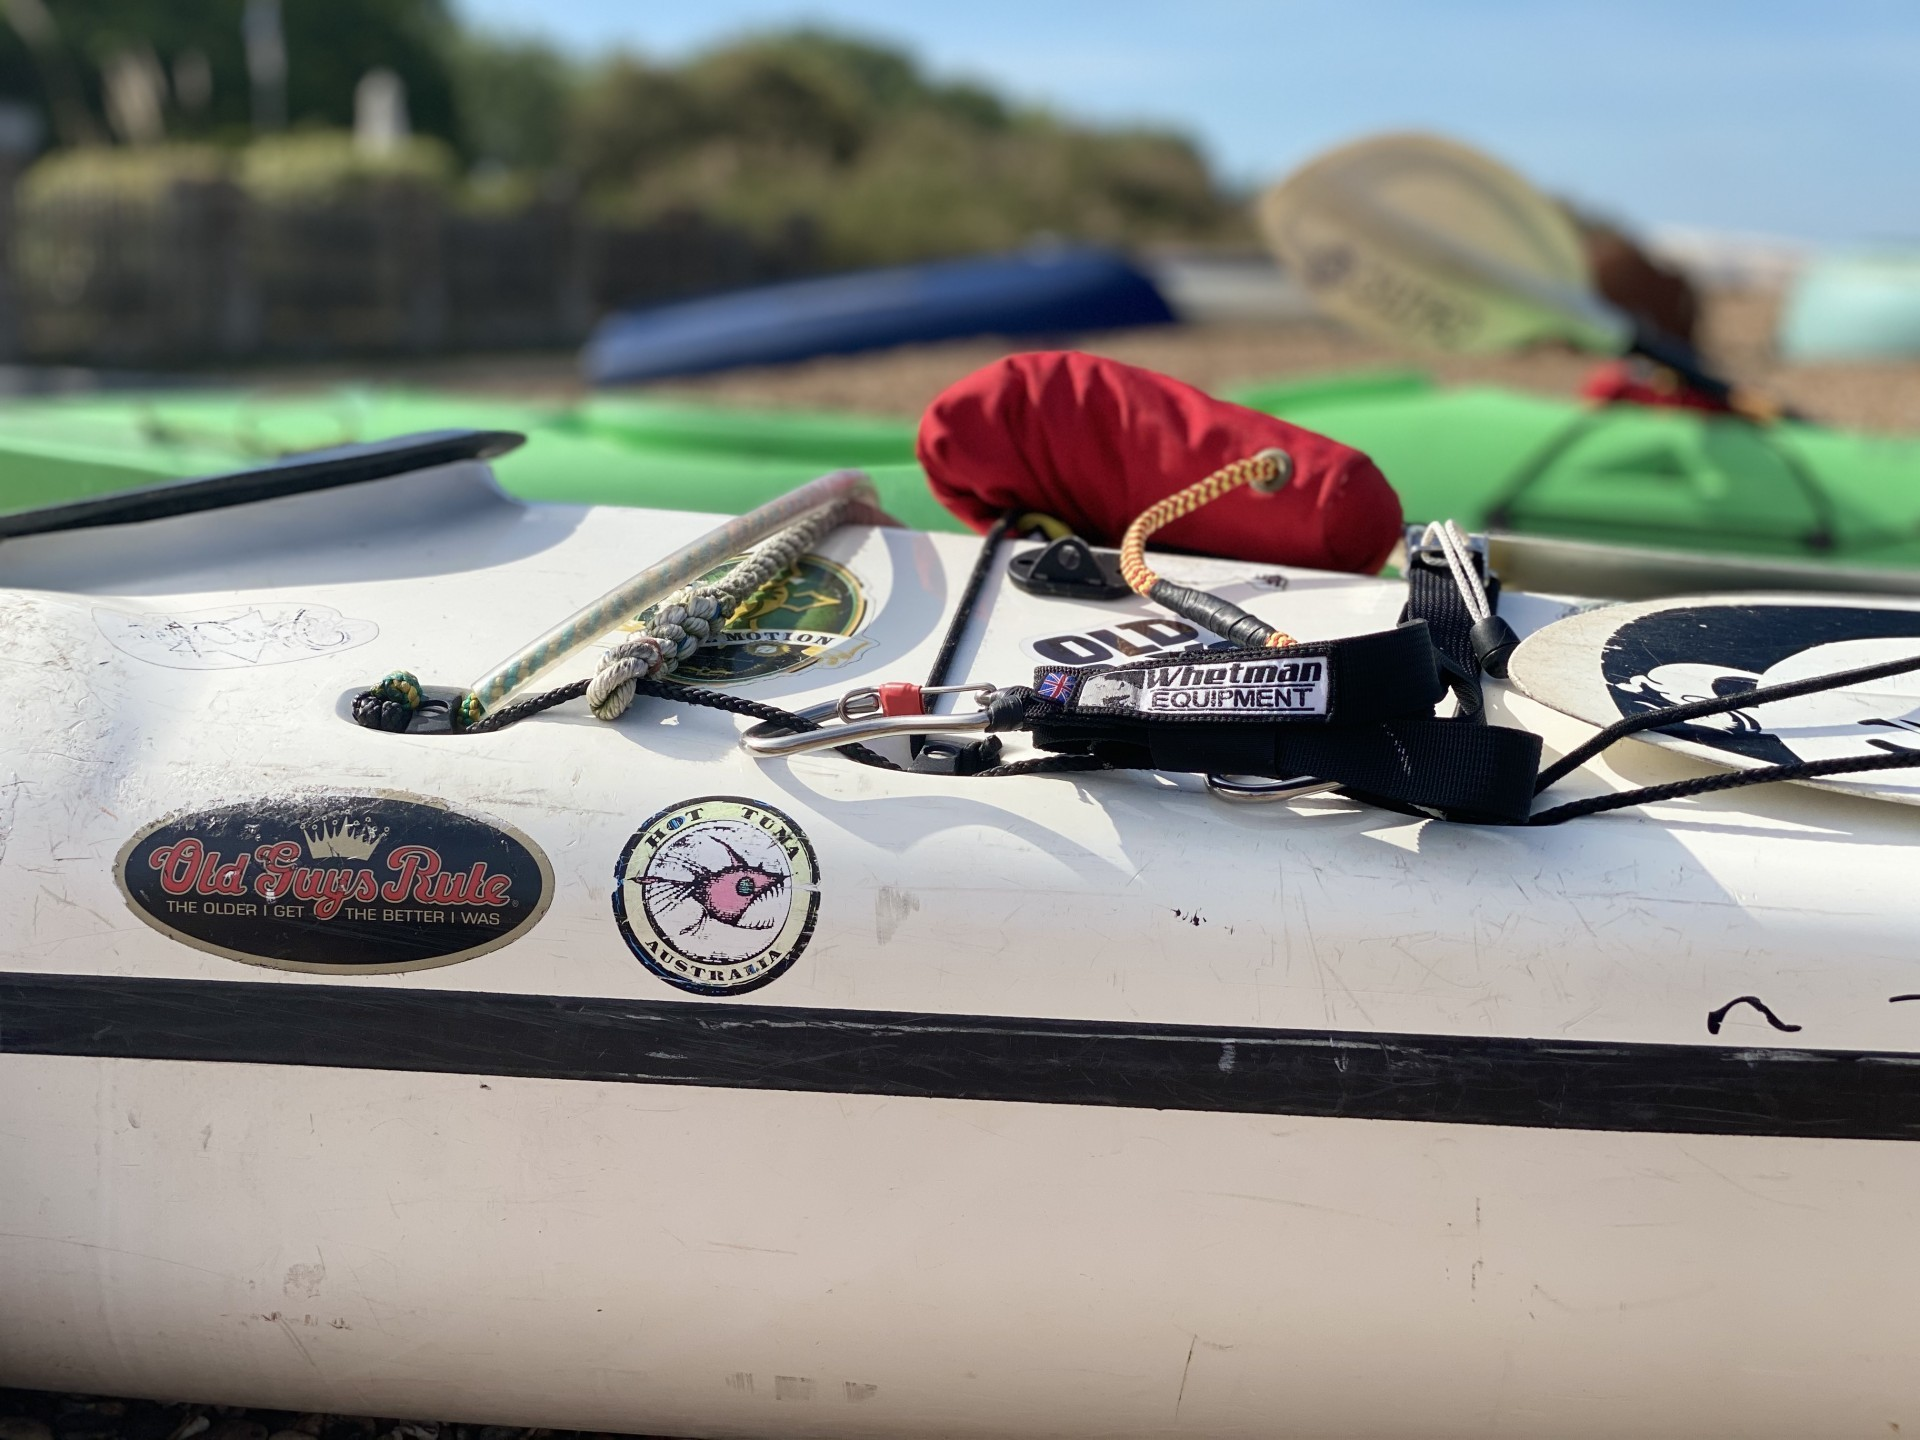 Safety equipment shown on the front deck of a sea kayak ready for a training course